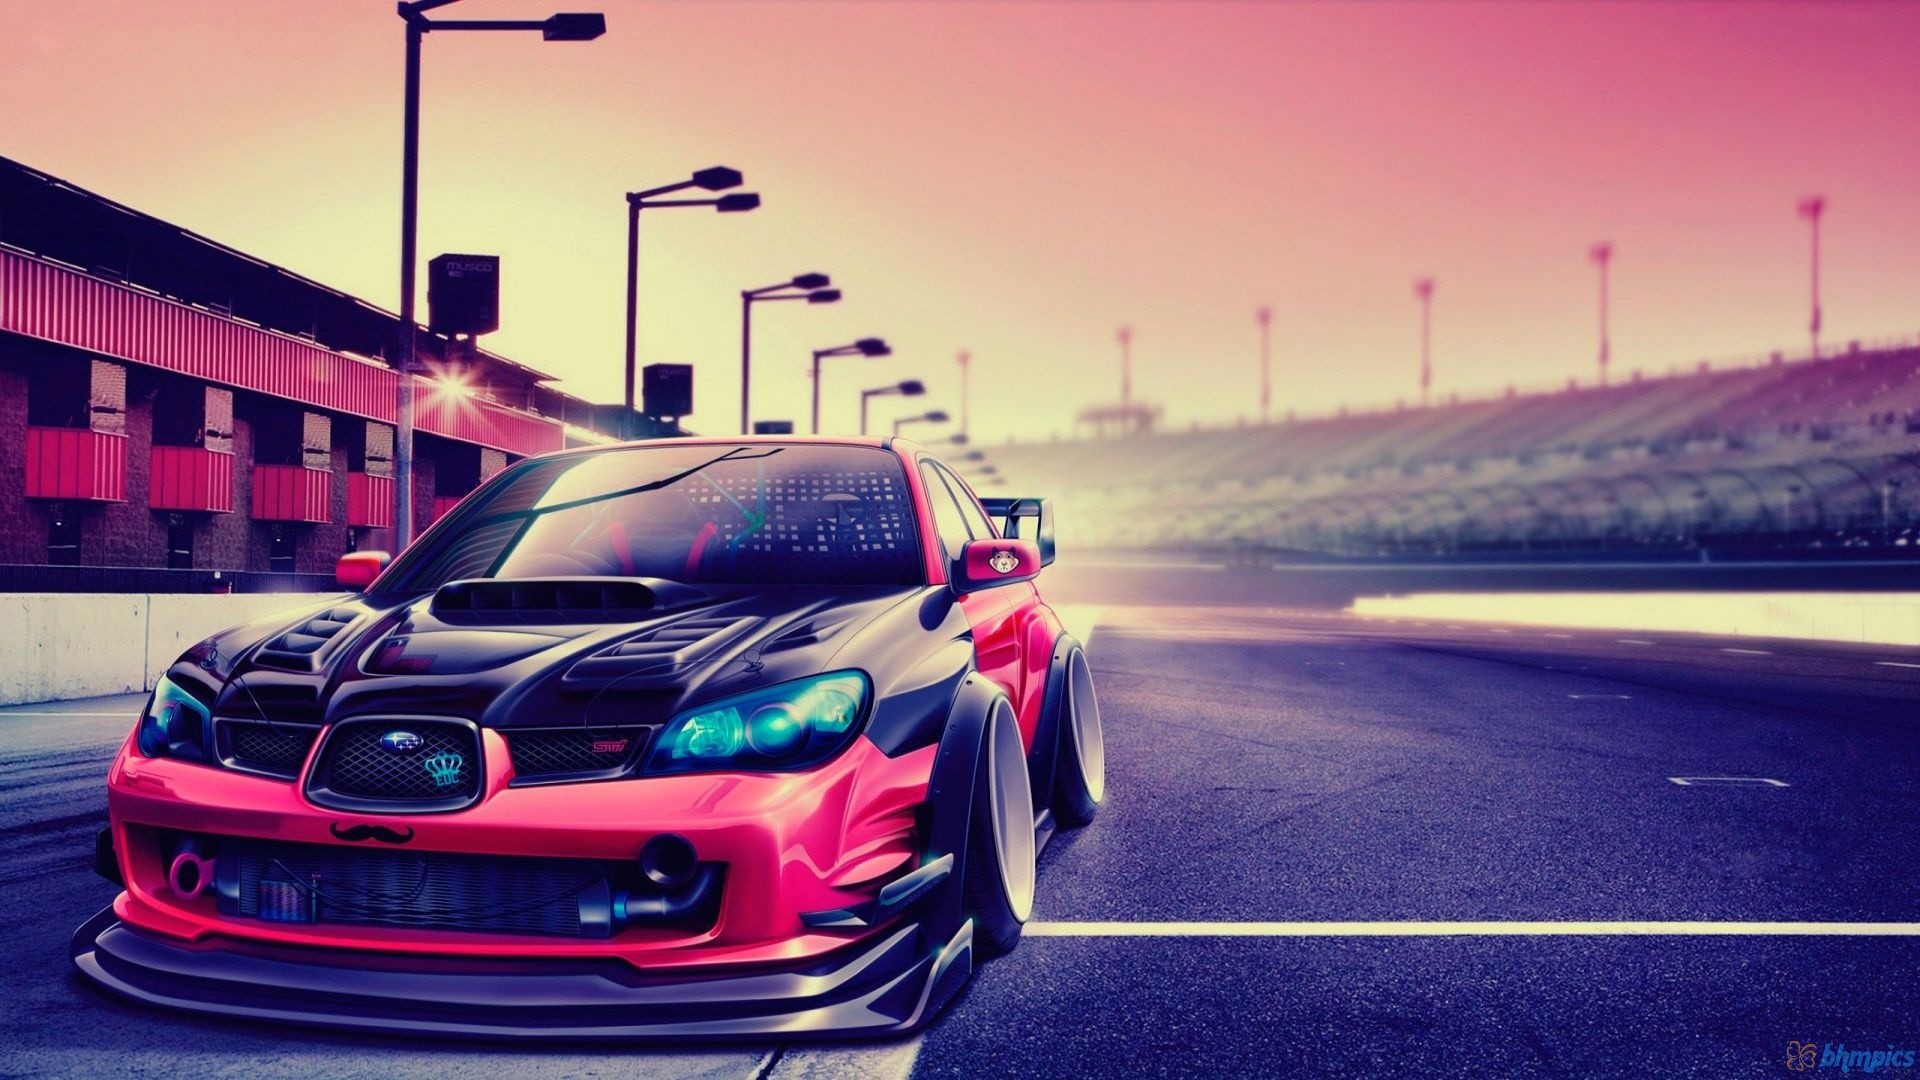 Modified Cars Wallpapers Wallpapertag